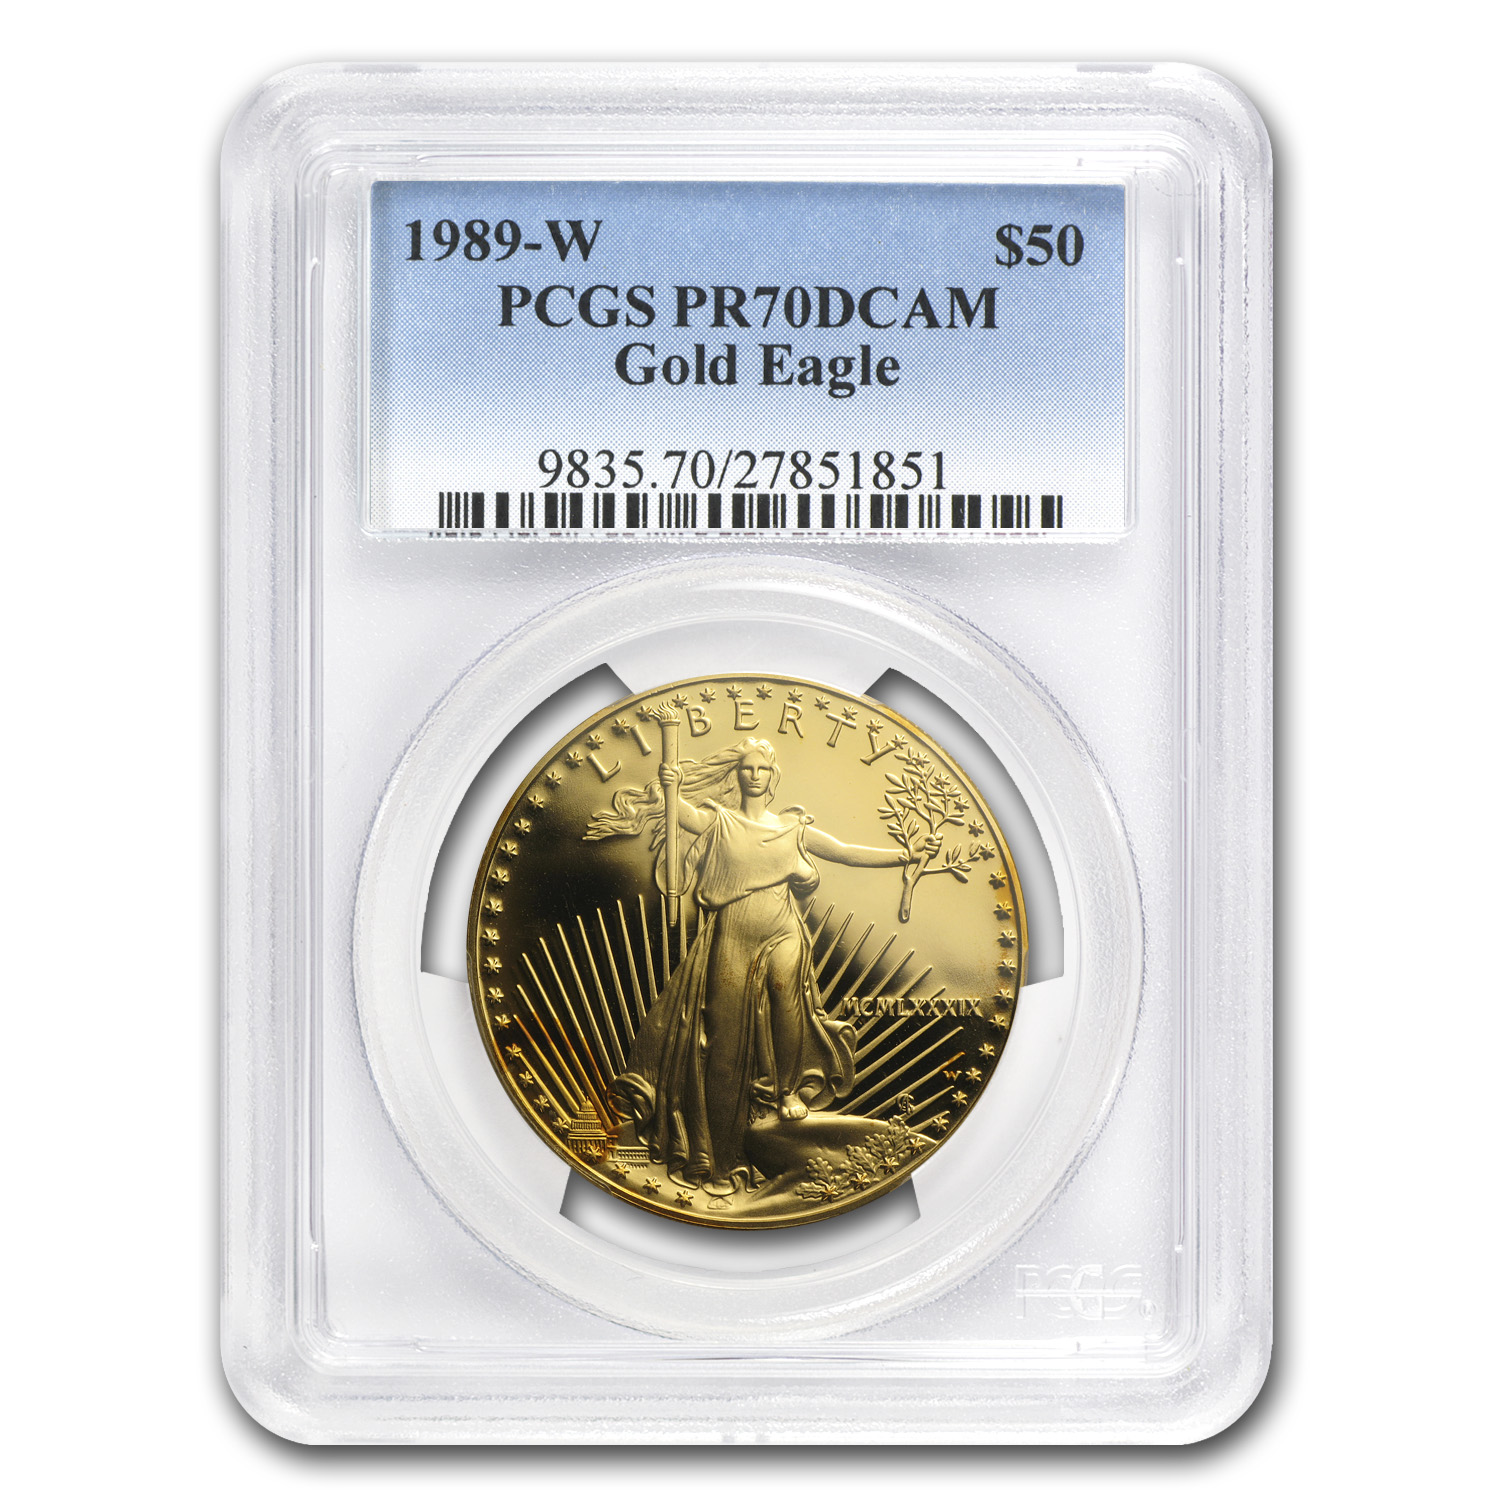 1989-W 1 oz Proof Gold American Eagle PR-70 PCGS